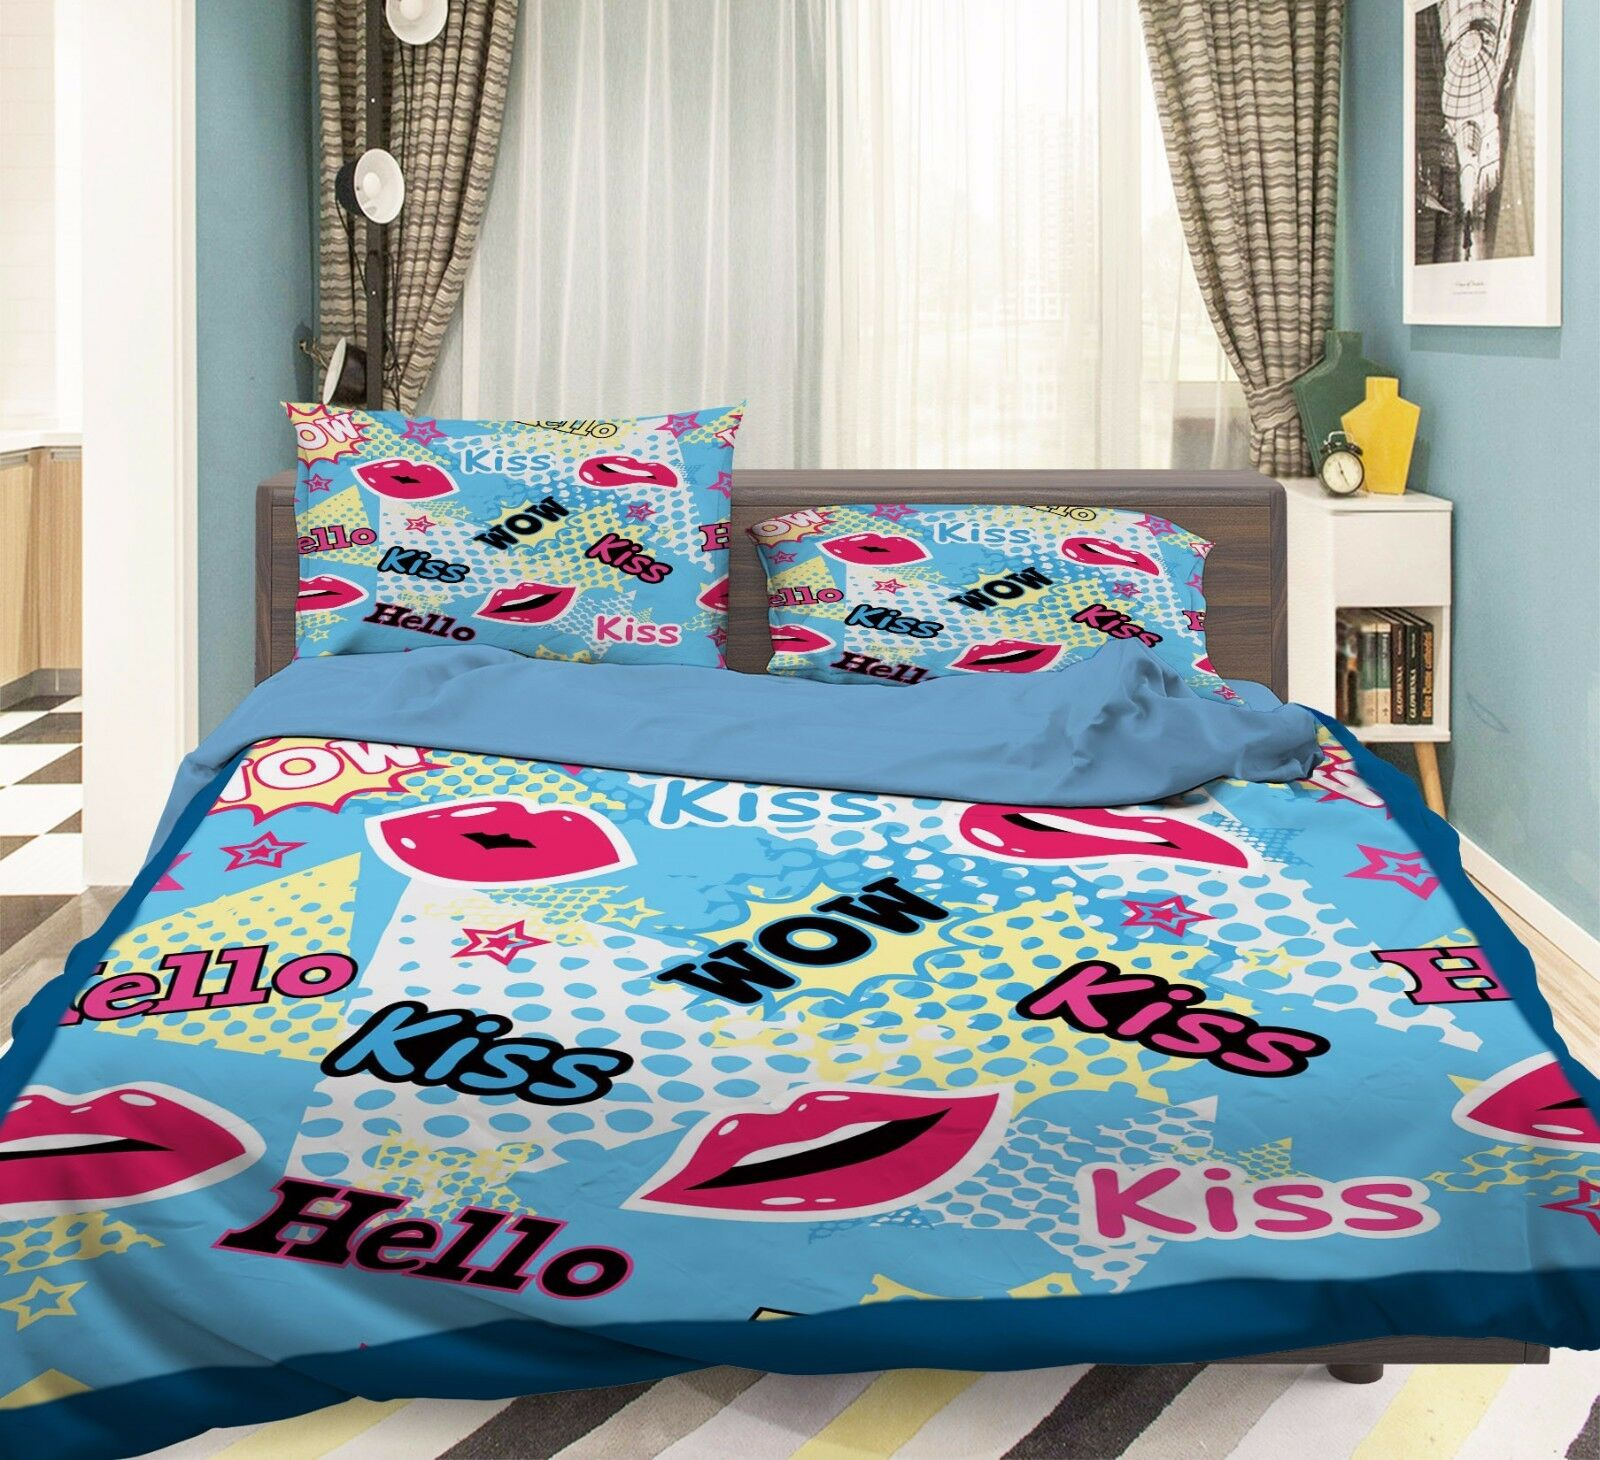 3D Rote Lippen 637 Bett Kissenbezüge steppen Duvet Decken Set Single DE Sunmmer